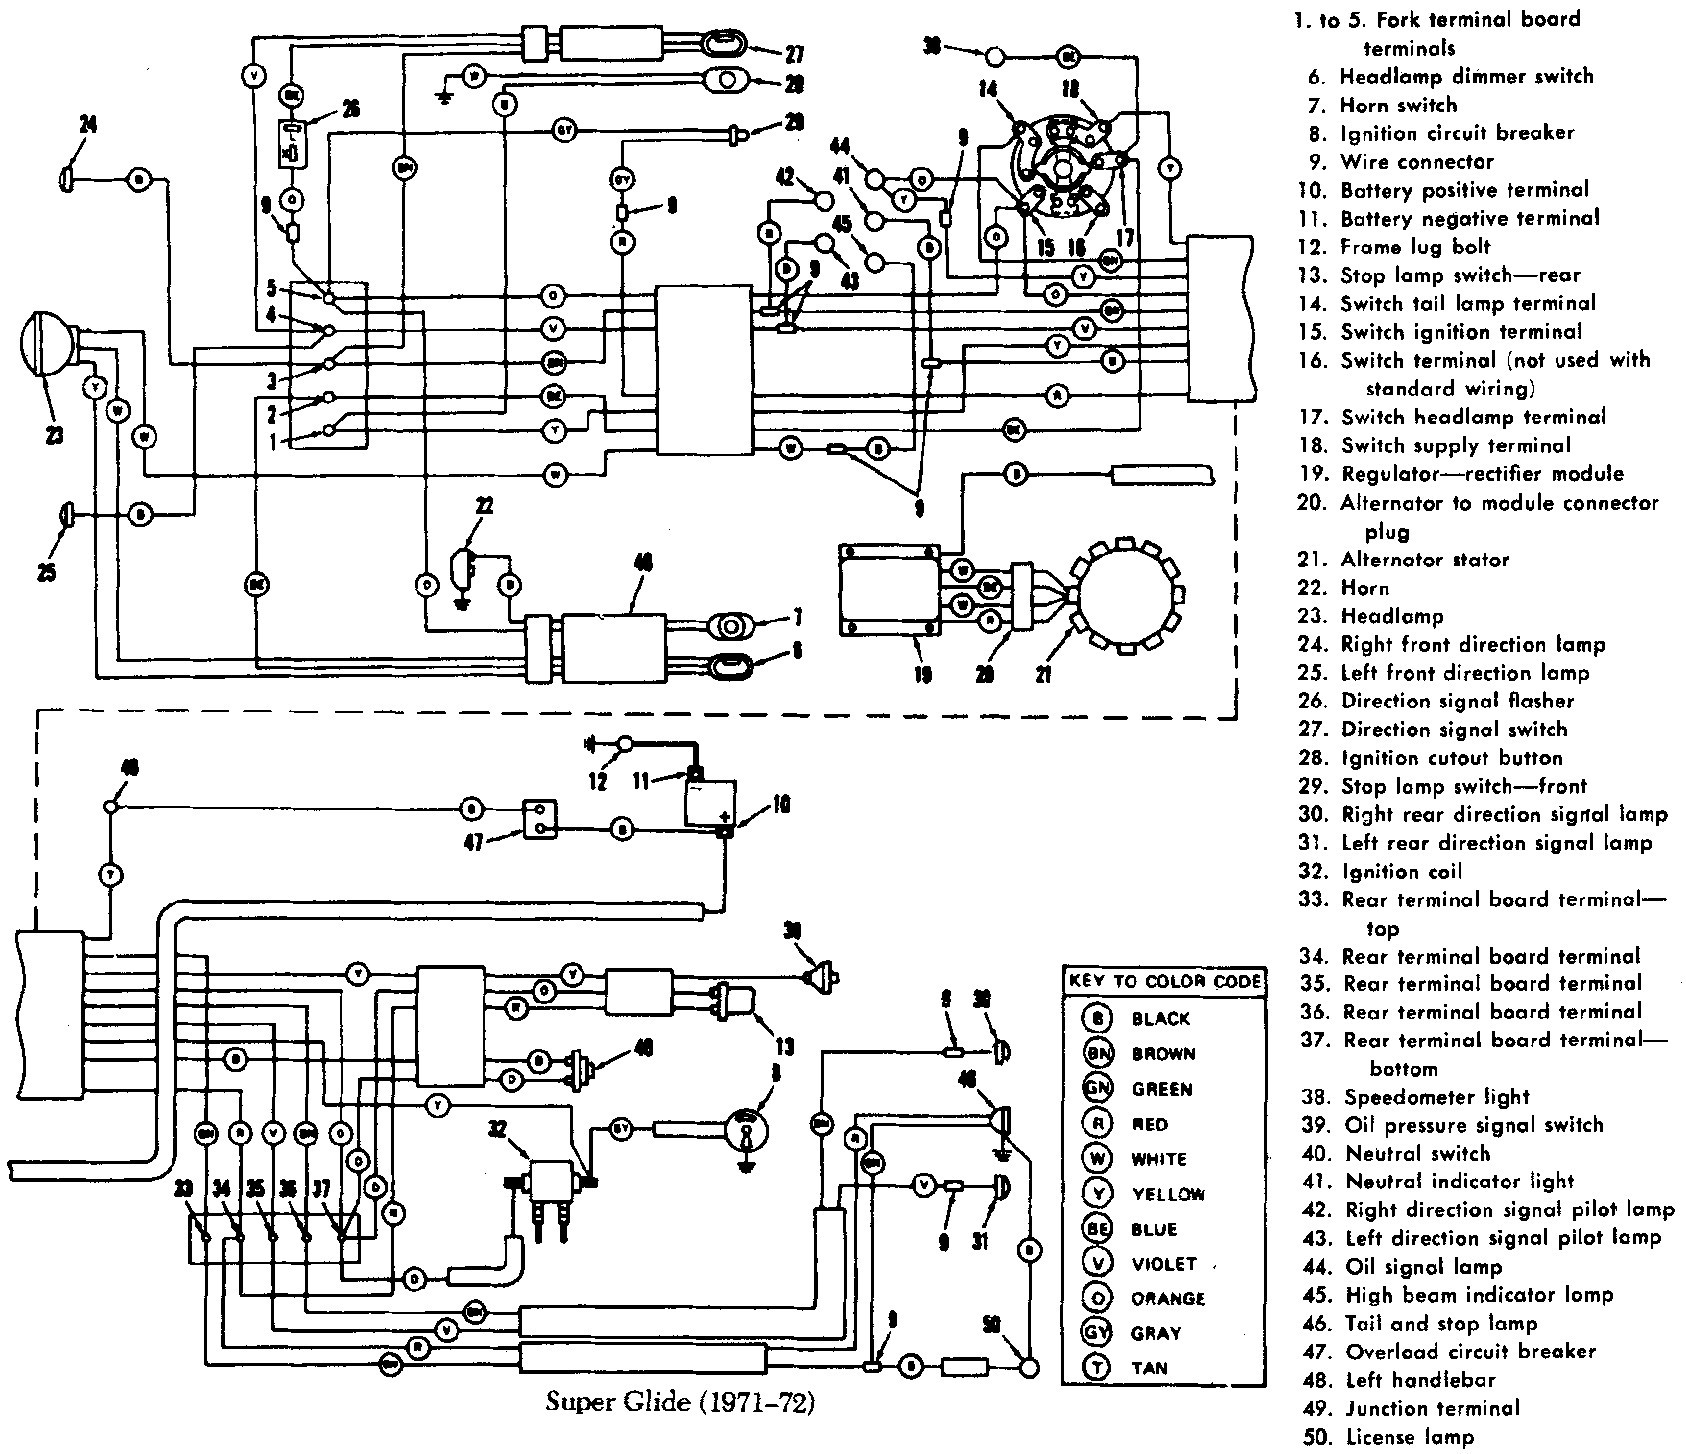 1992 Harley Davidson 1200 Sportster Wiring Diagram Trusted Softail Headlight With 5 Parts